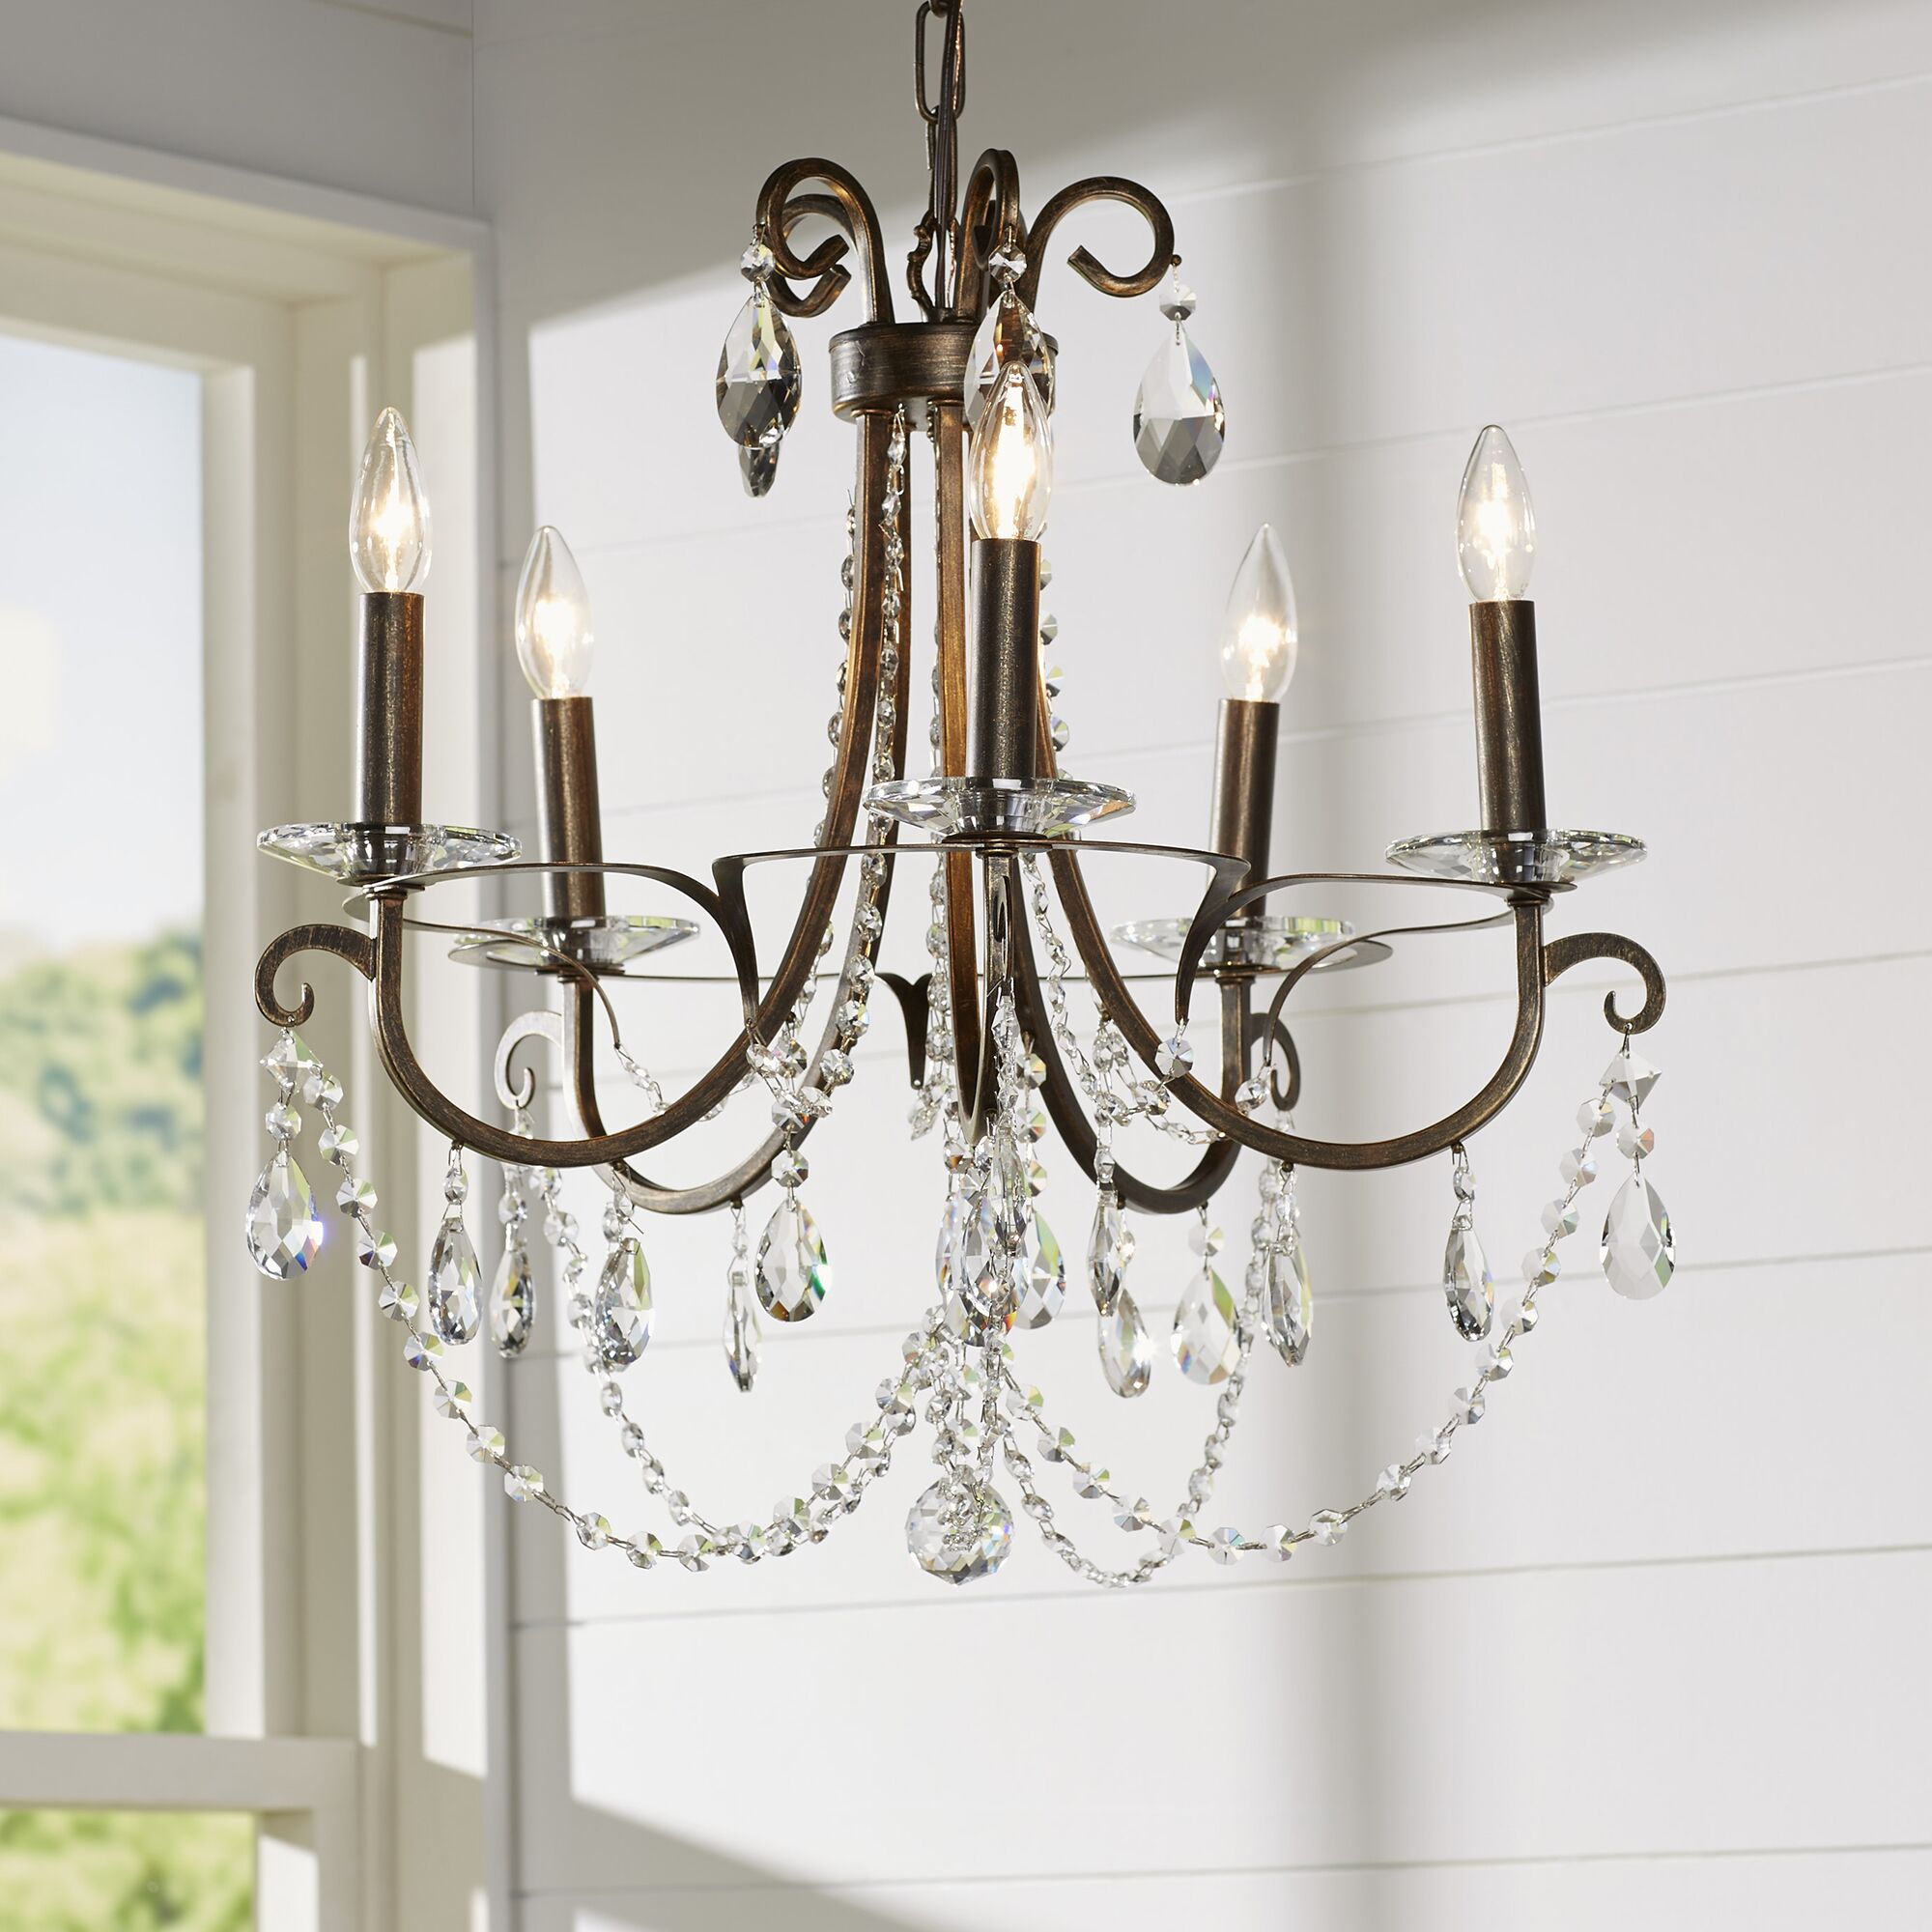 Roesler 5-Light Candle Style Chandelier Finish: English Bronze Steel